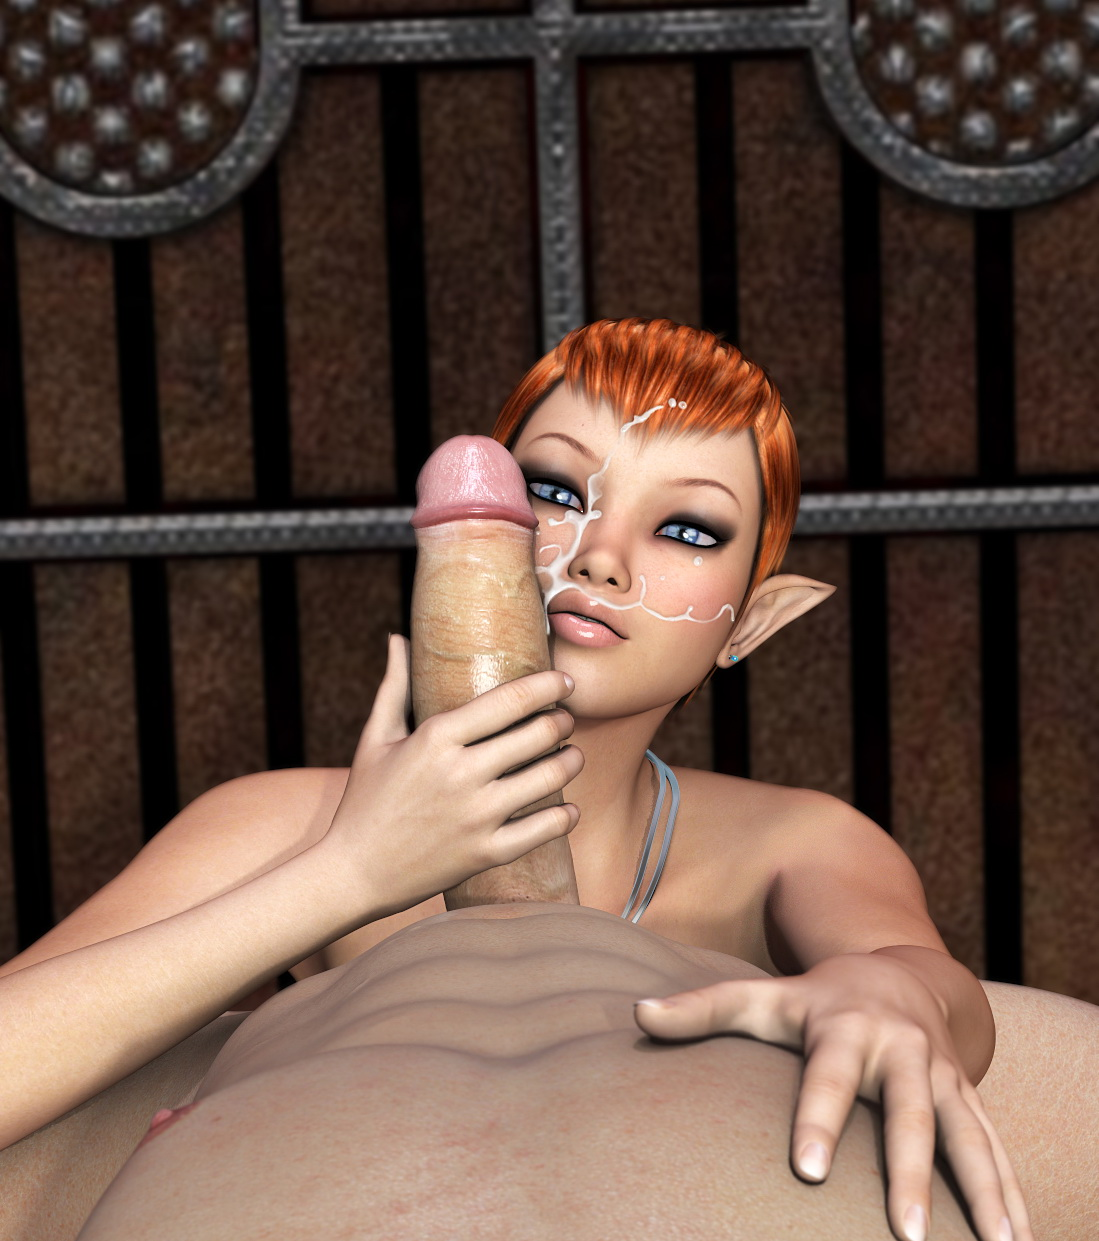 Elf sucks monster erotic movies